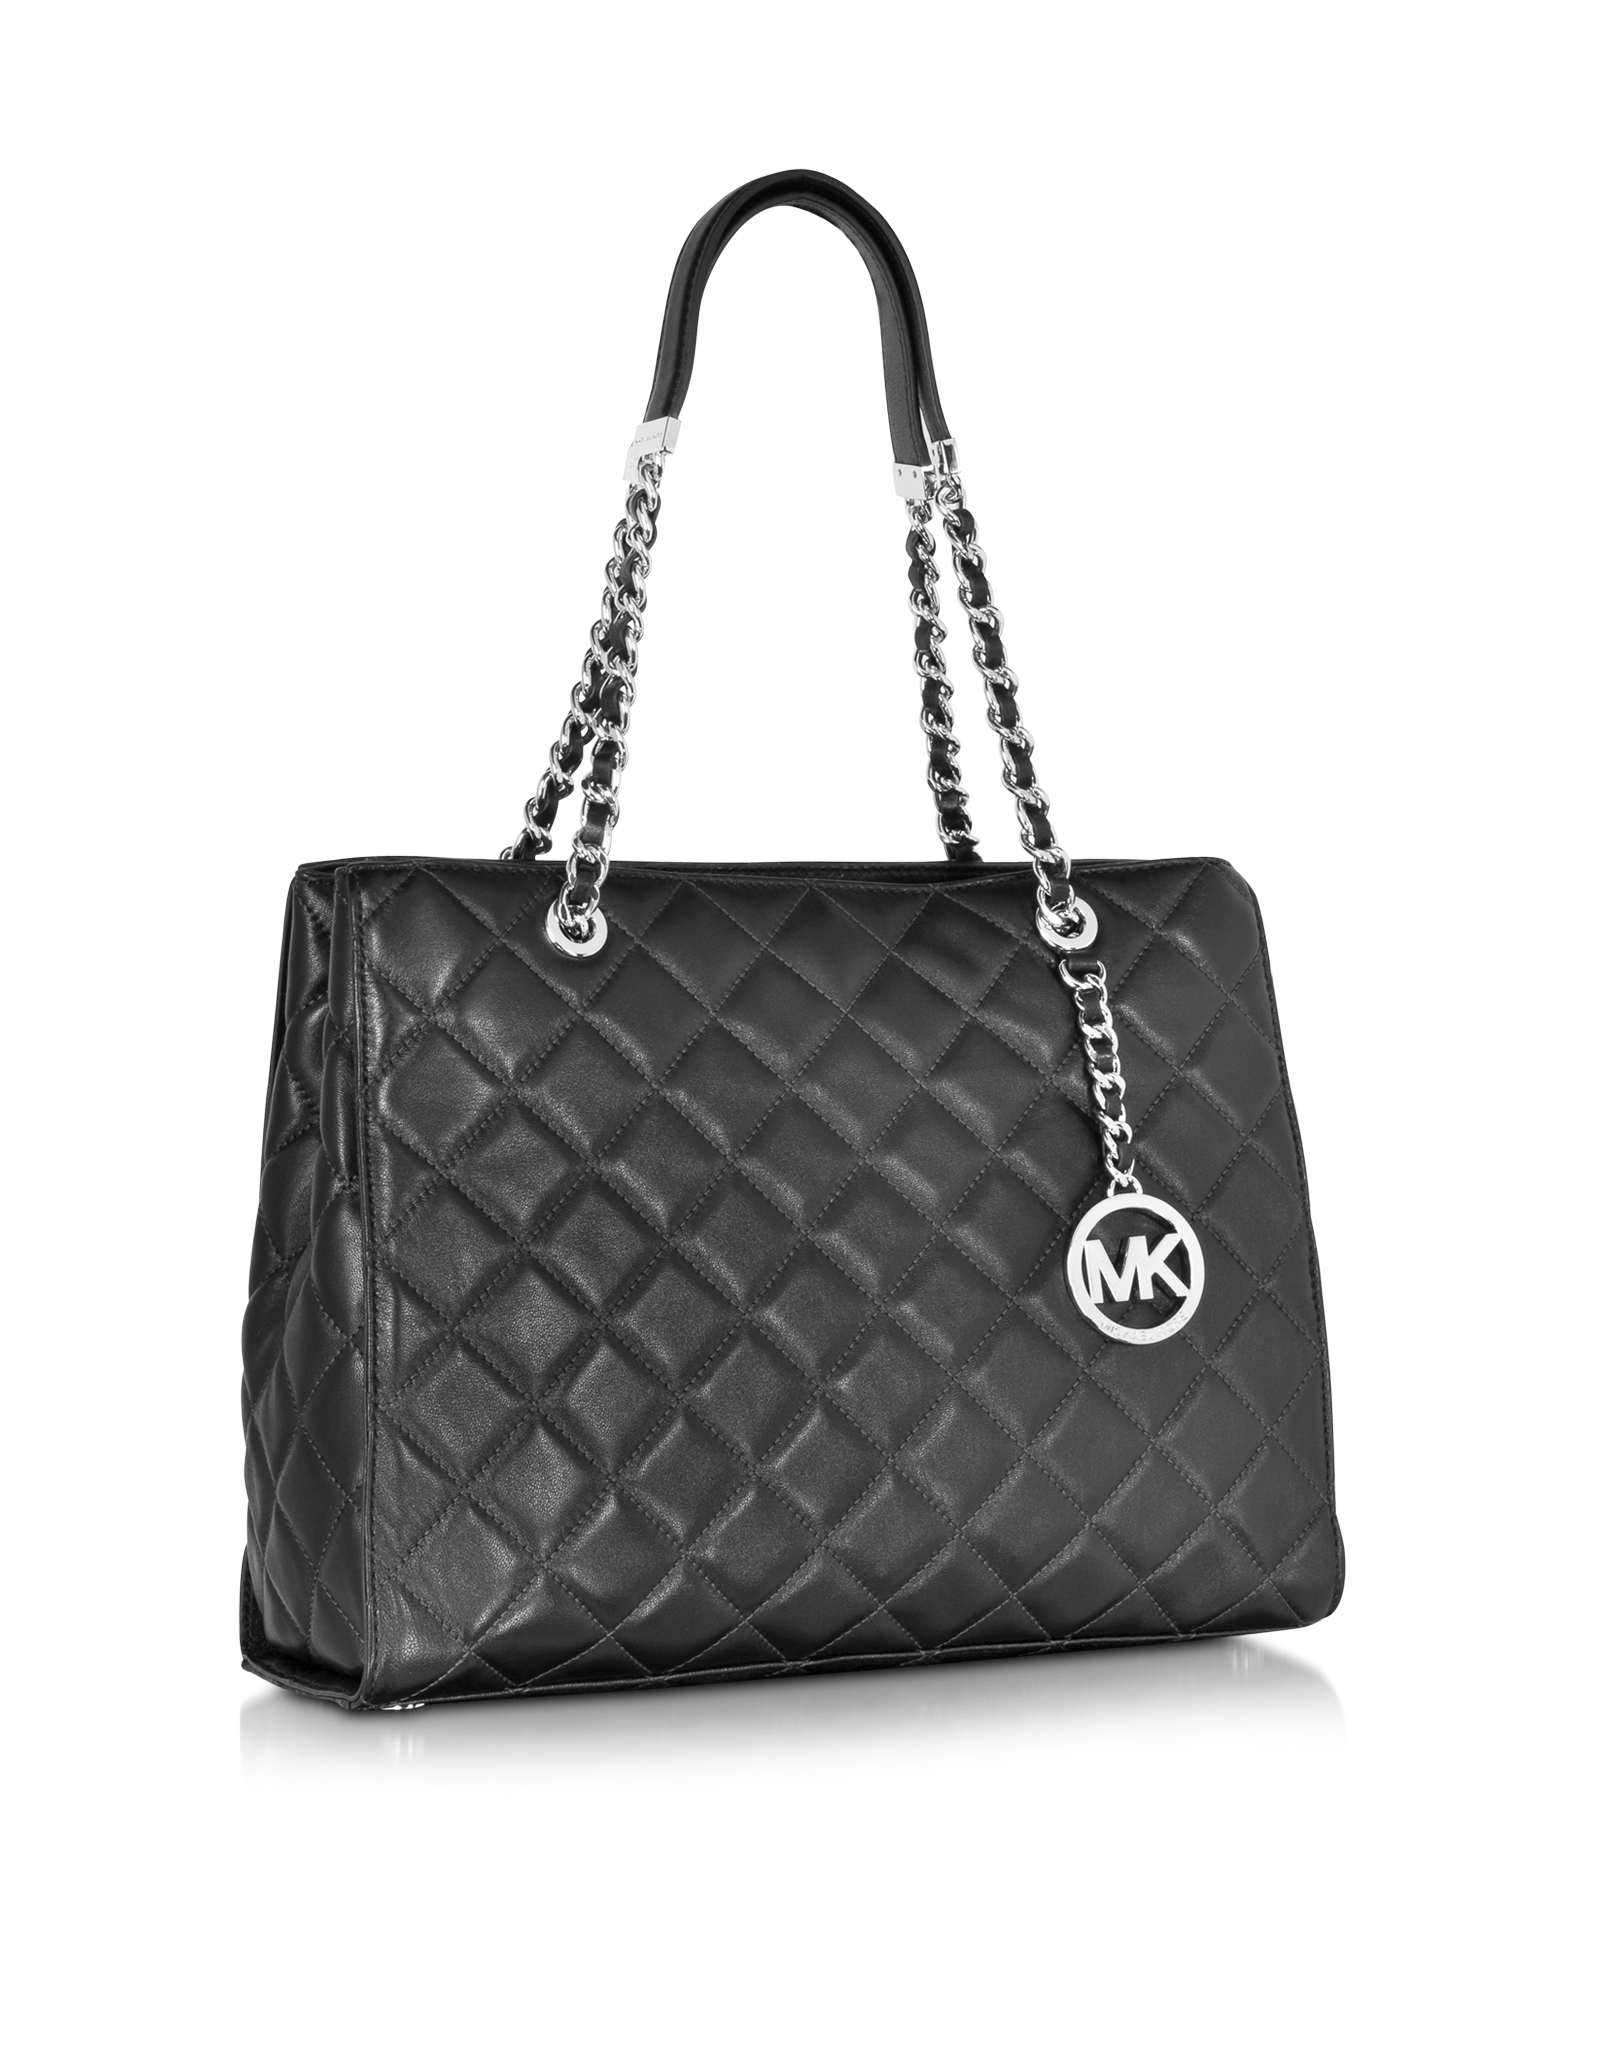 Lyst Michael Kors Susannah Large Black Quilted Leather